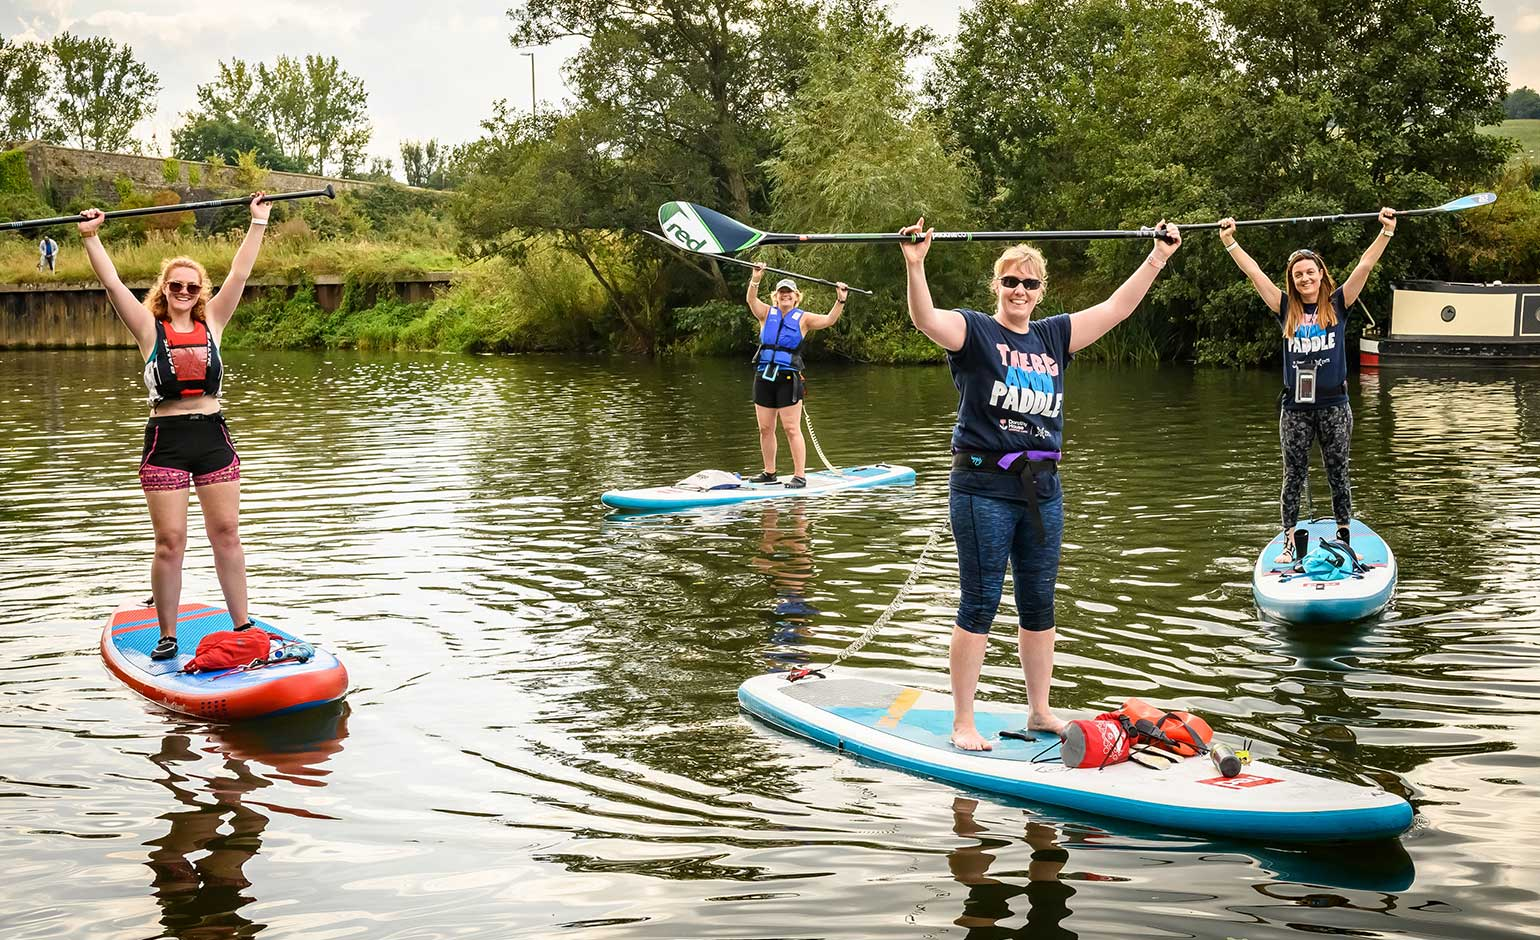 £13,000 raised for Dorothy House charity thanks to Big Avon Paddle event